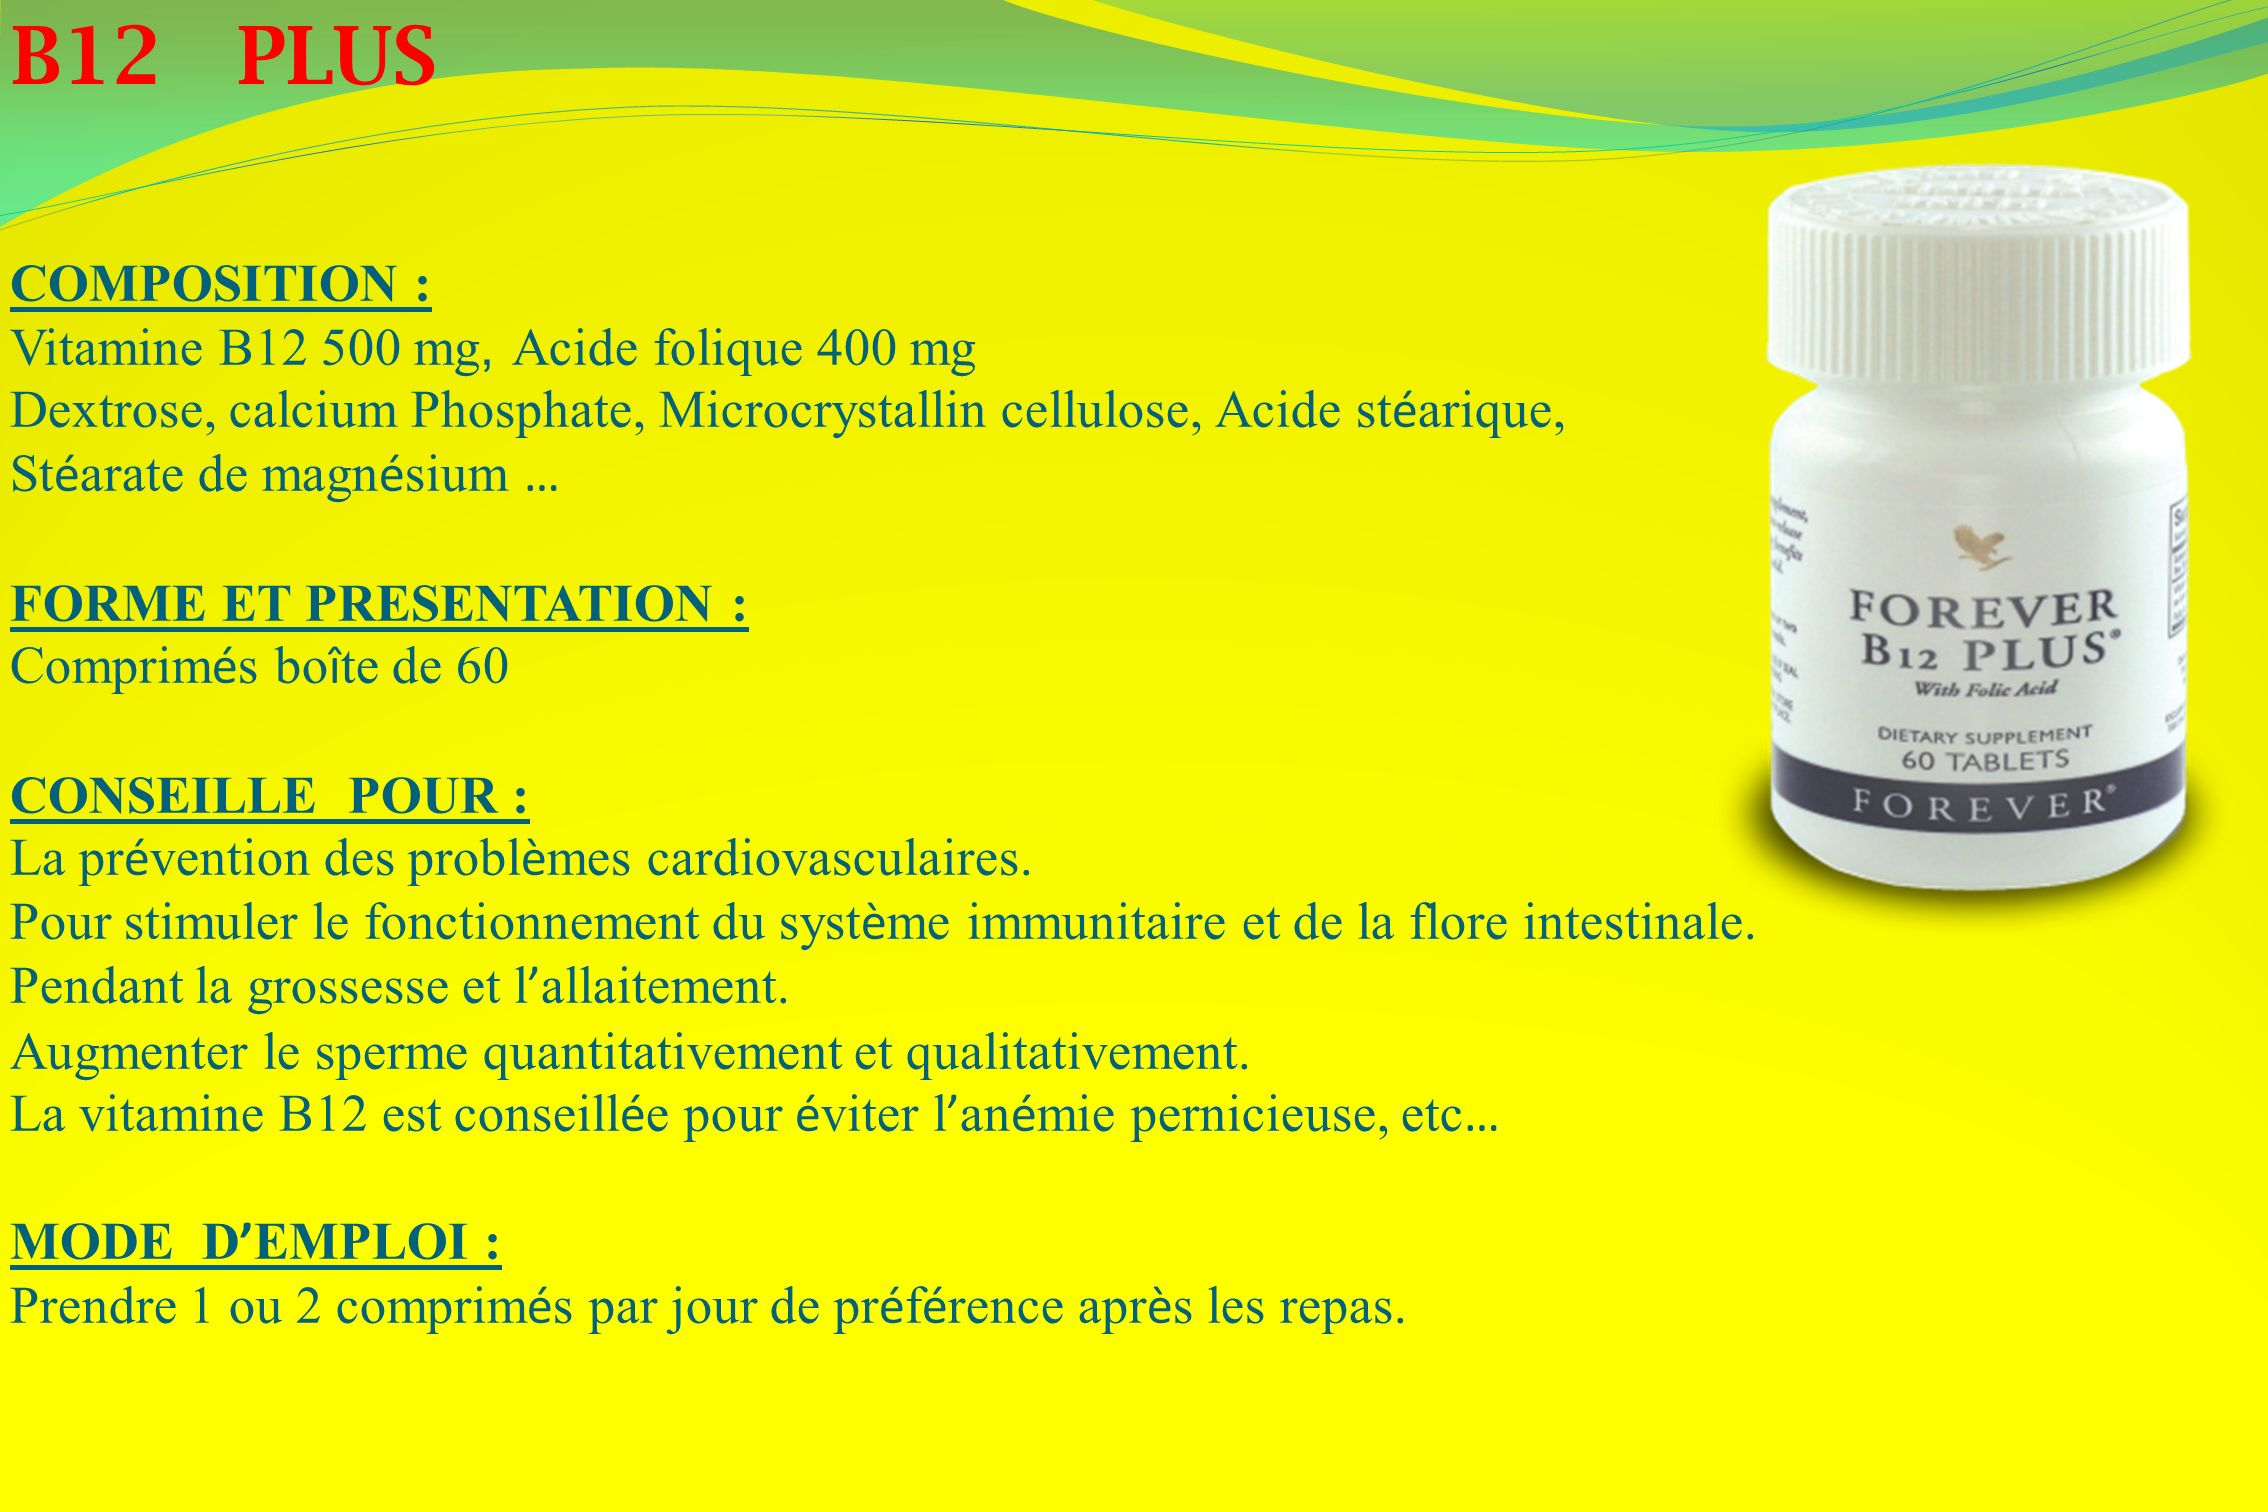 B12 PLUS COMPOSITION : Vitamine B12 500 mg, Acide folique 400 mg